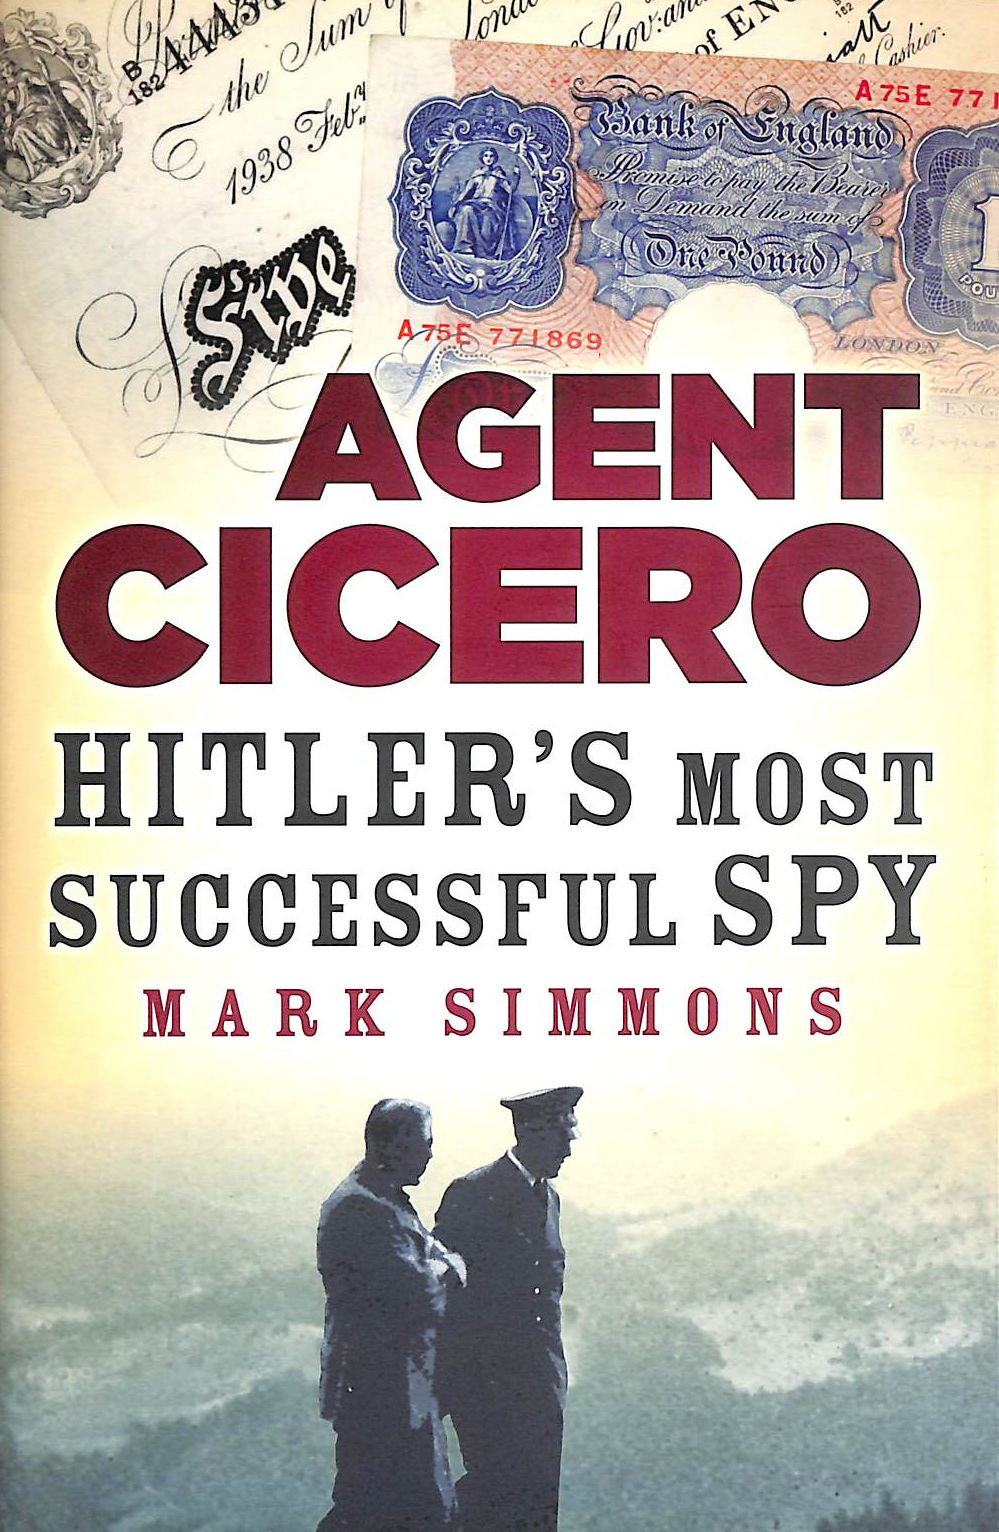 Image for Agent Cicero: Hitler's Most Successful Spy.